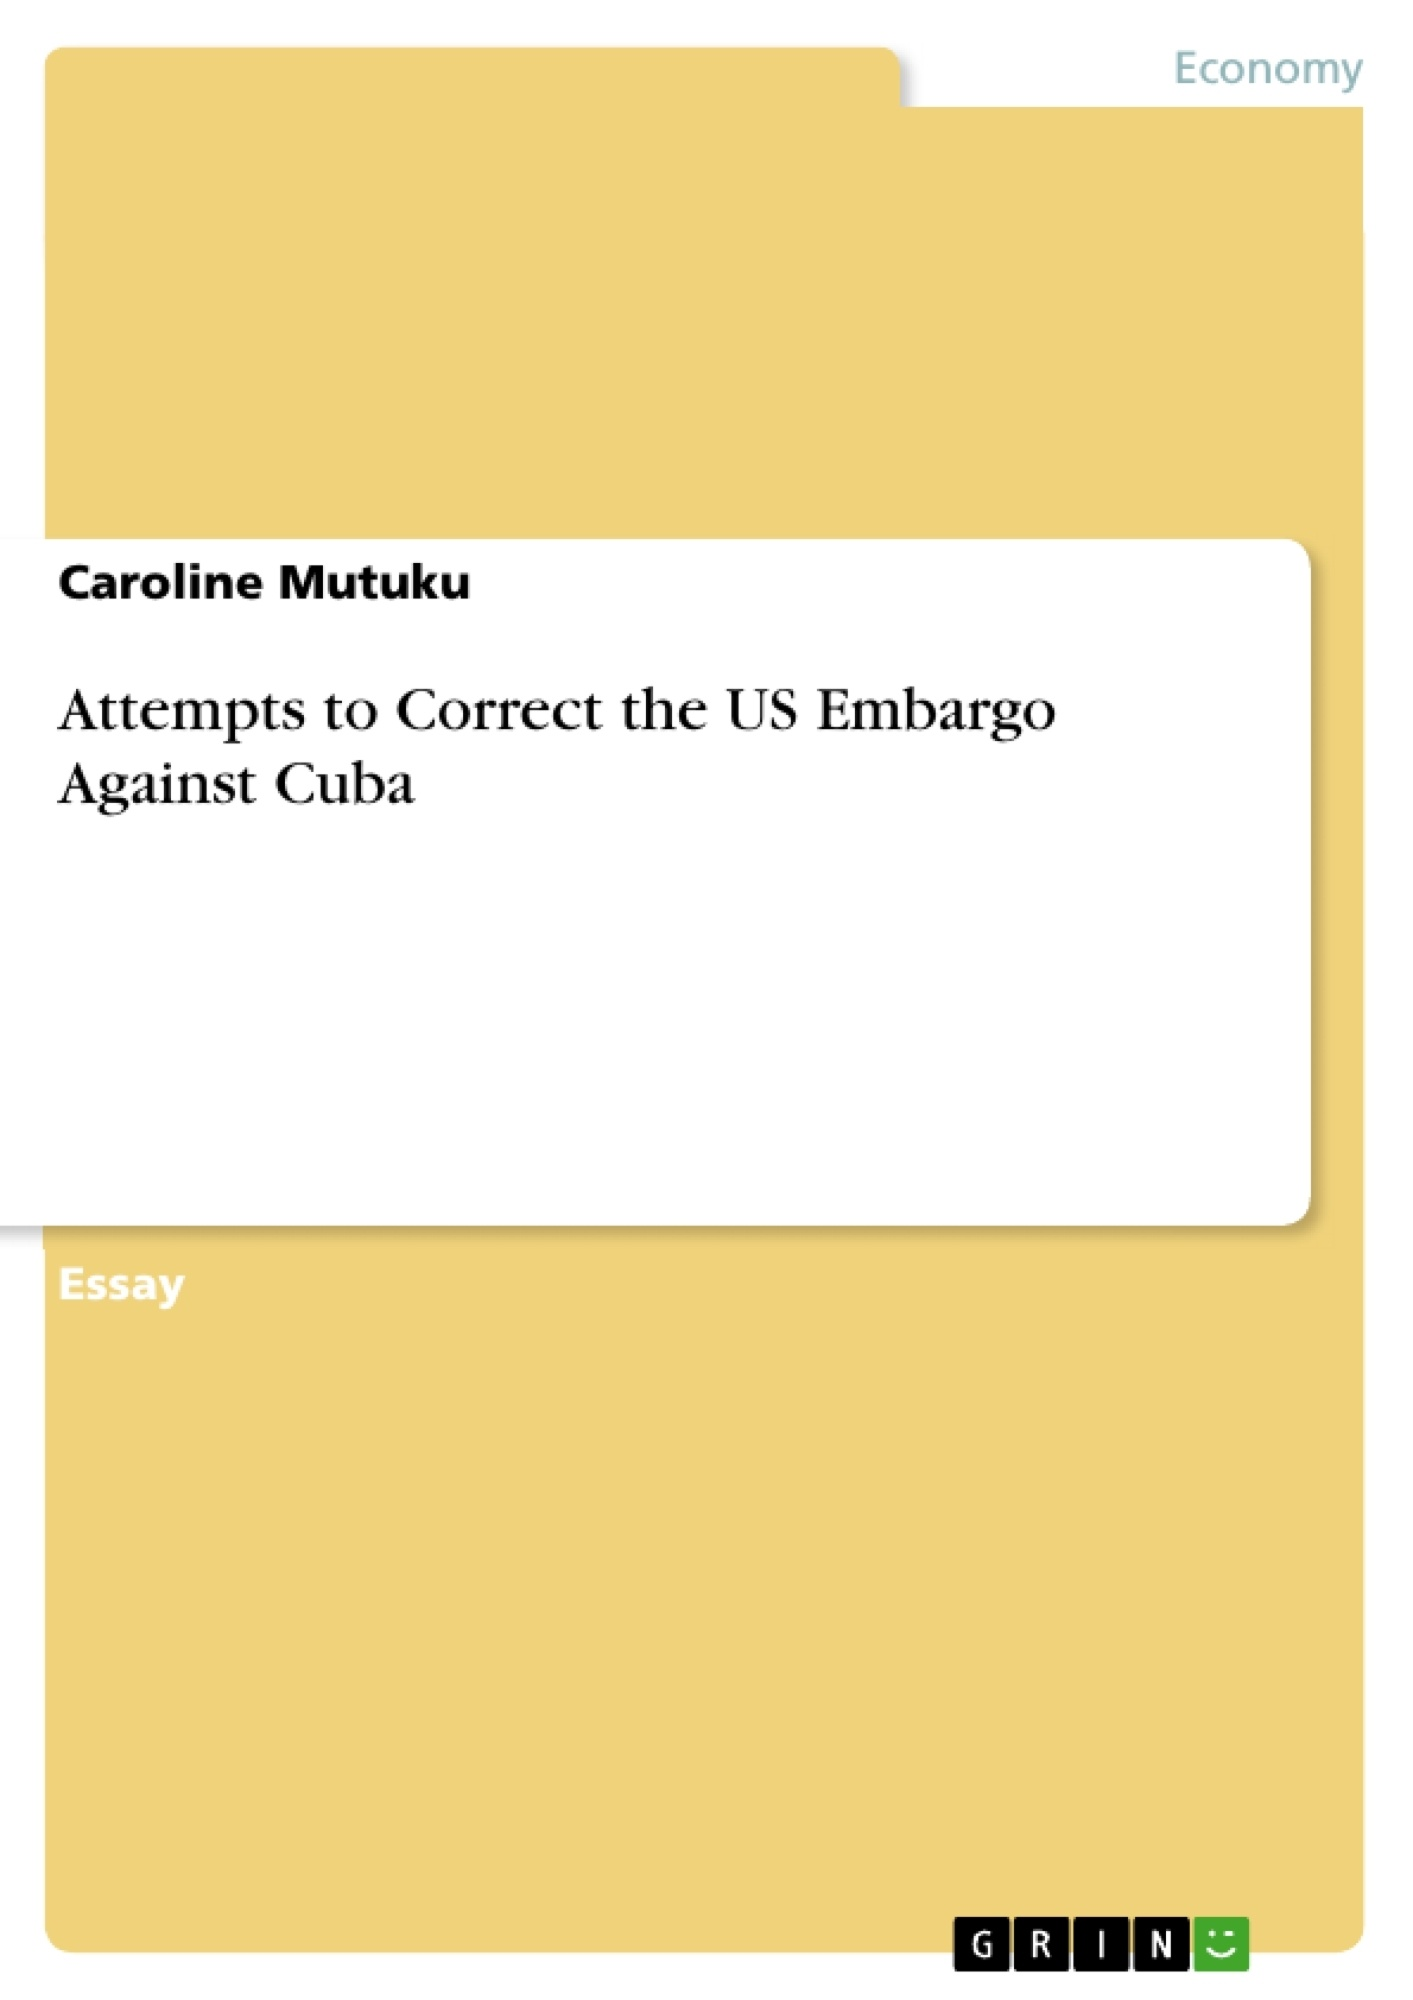 Title: Attempts to Correct the US Embargo Against Cuba